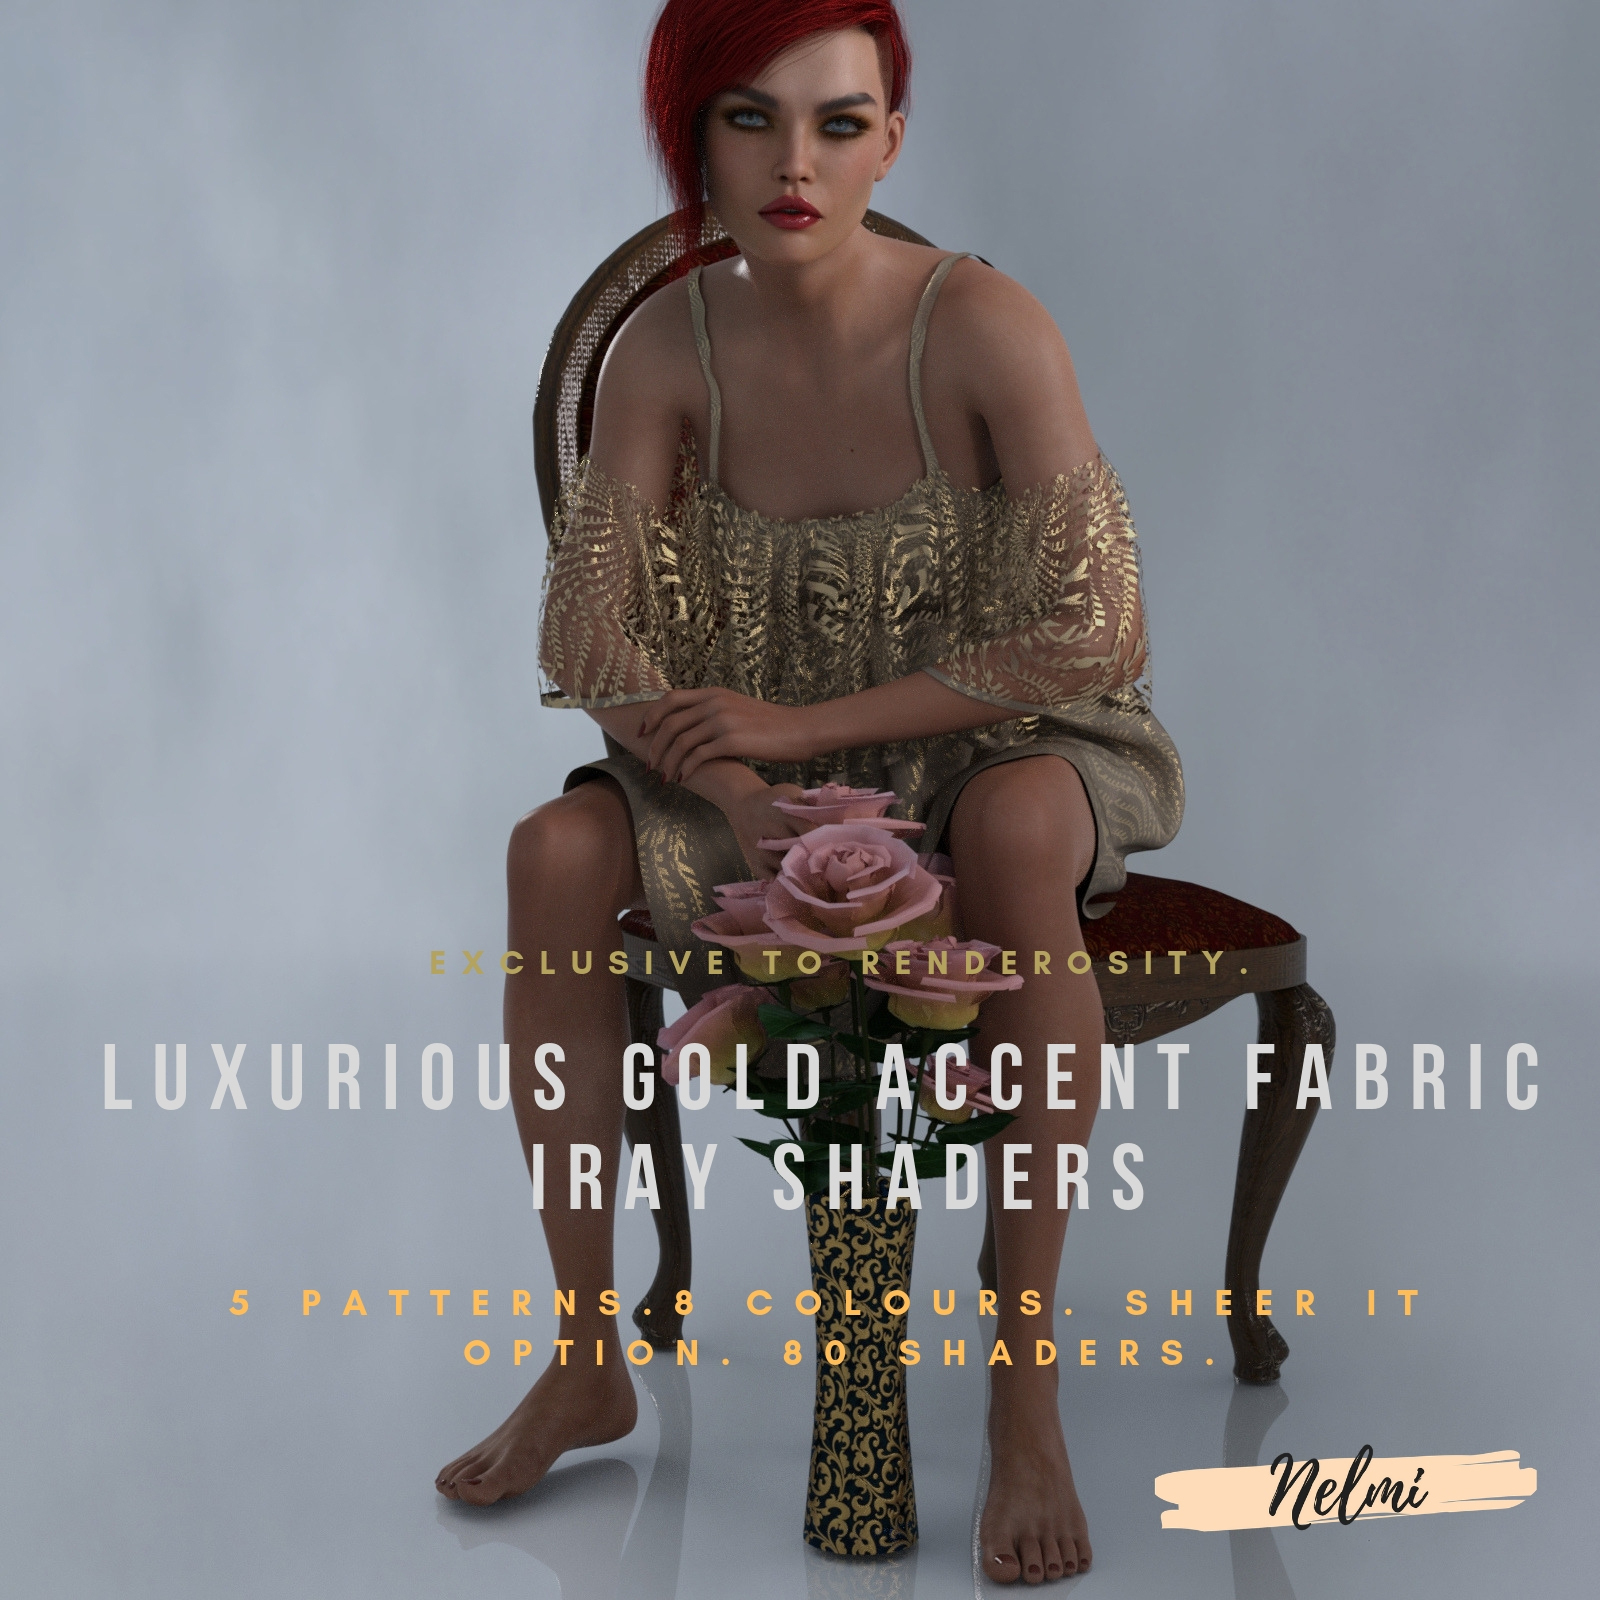 Luxurious Gold Accent Fabric Iray Shaders